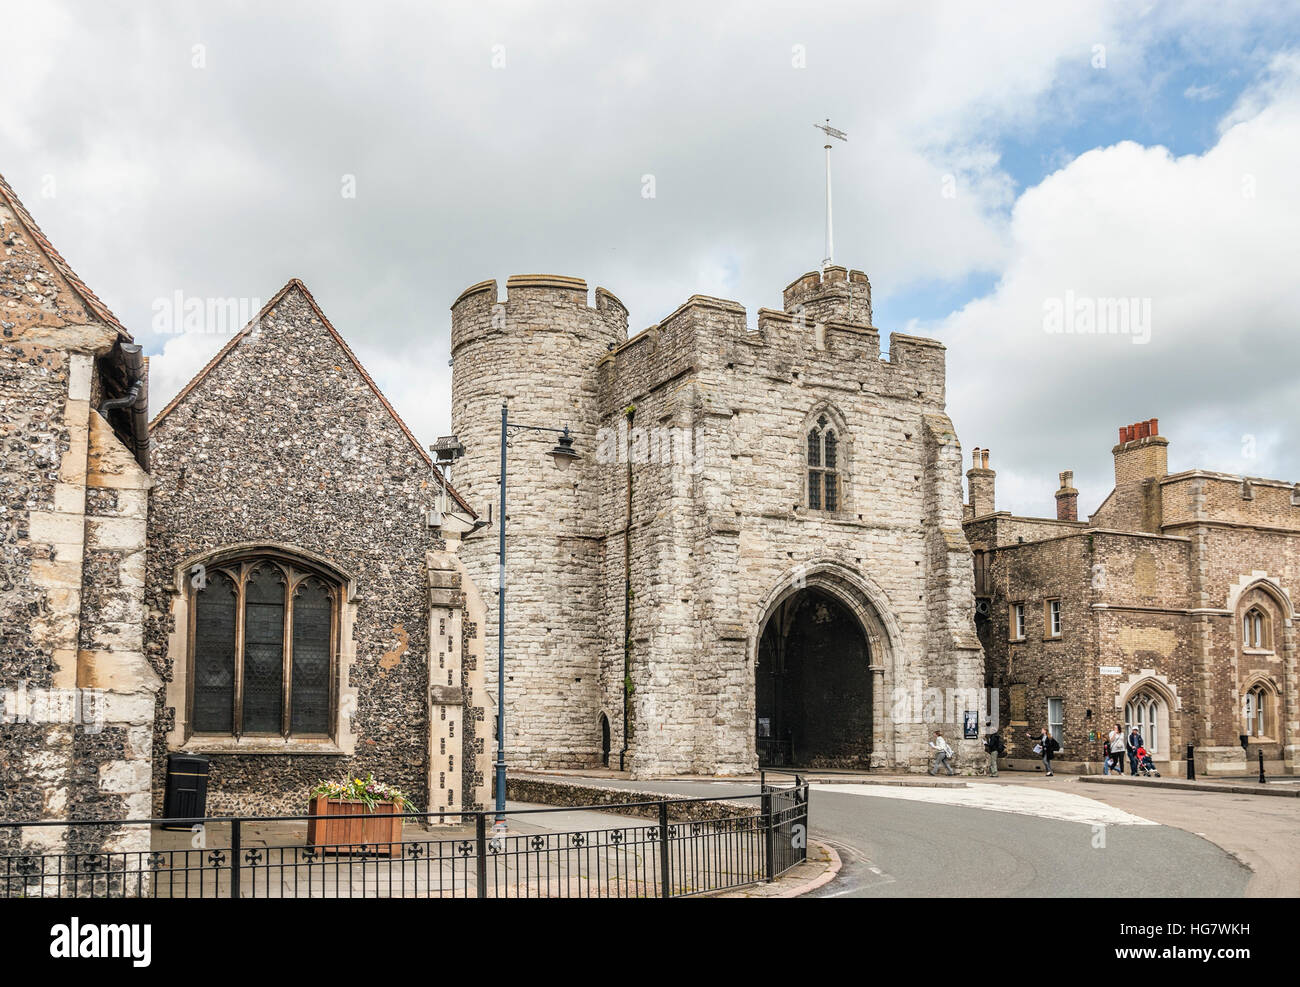 The Westgate a medieval  gatehouse  in Canterbury, Kent, England. - Stock Image